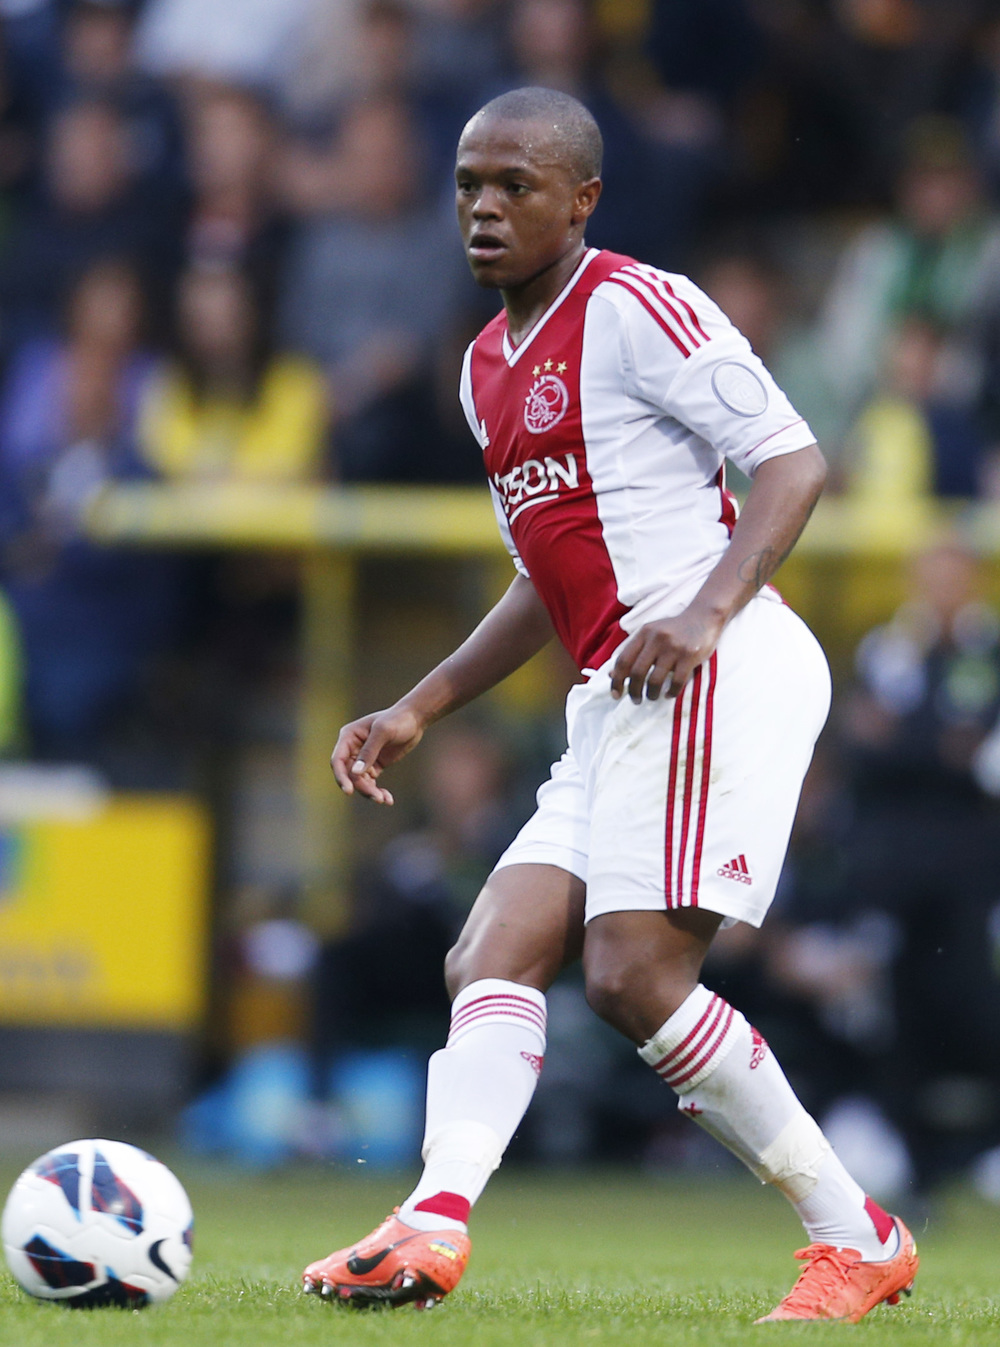 Thulani Serero in action for Ajax Amsterdam. Mosimane's work with Serero has seen the youngster become one of South Africa's best exports. Action Images / Andrew Couldridge